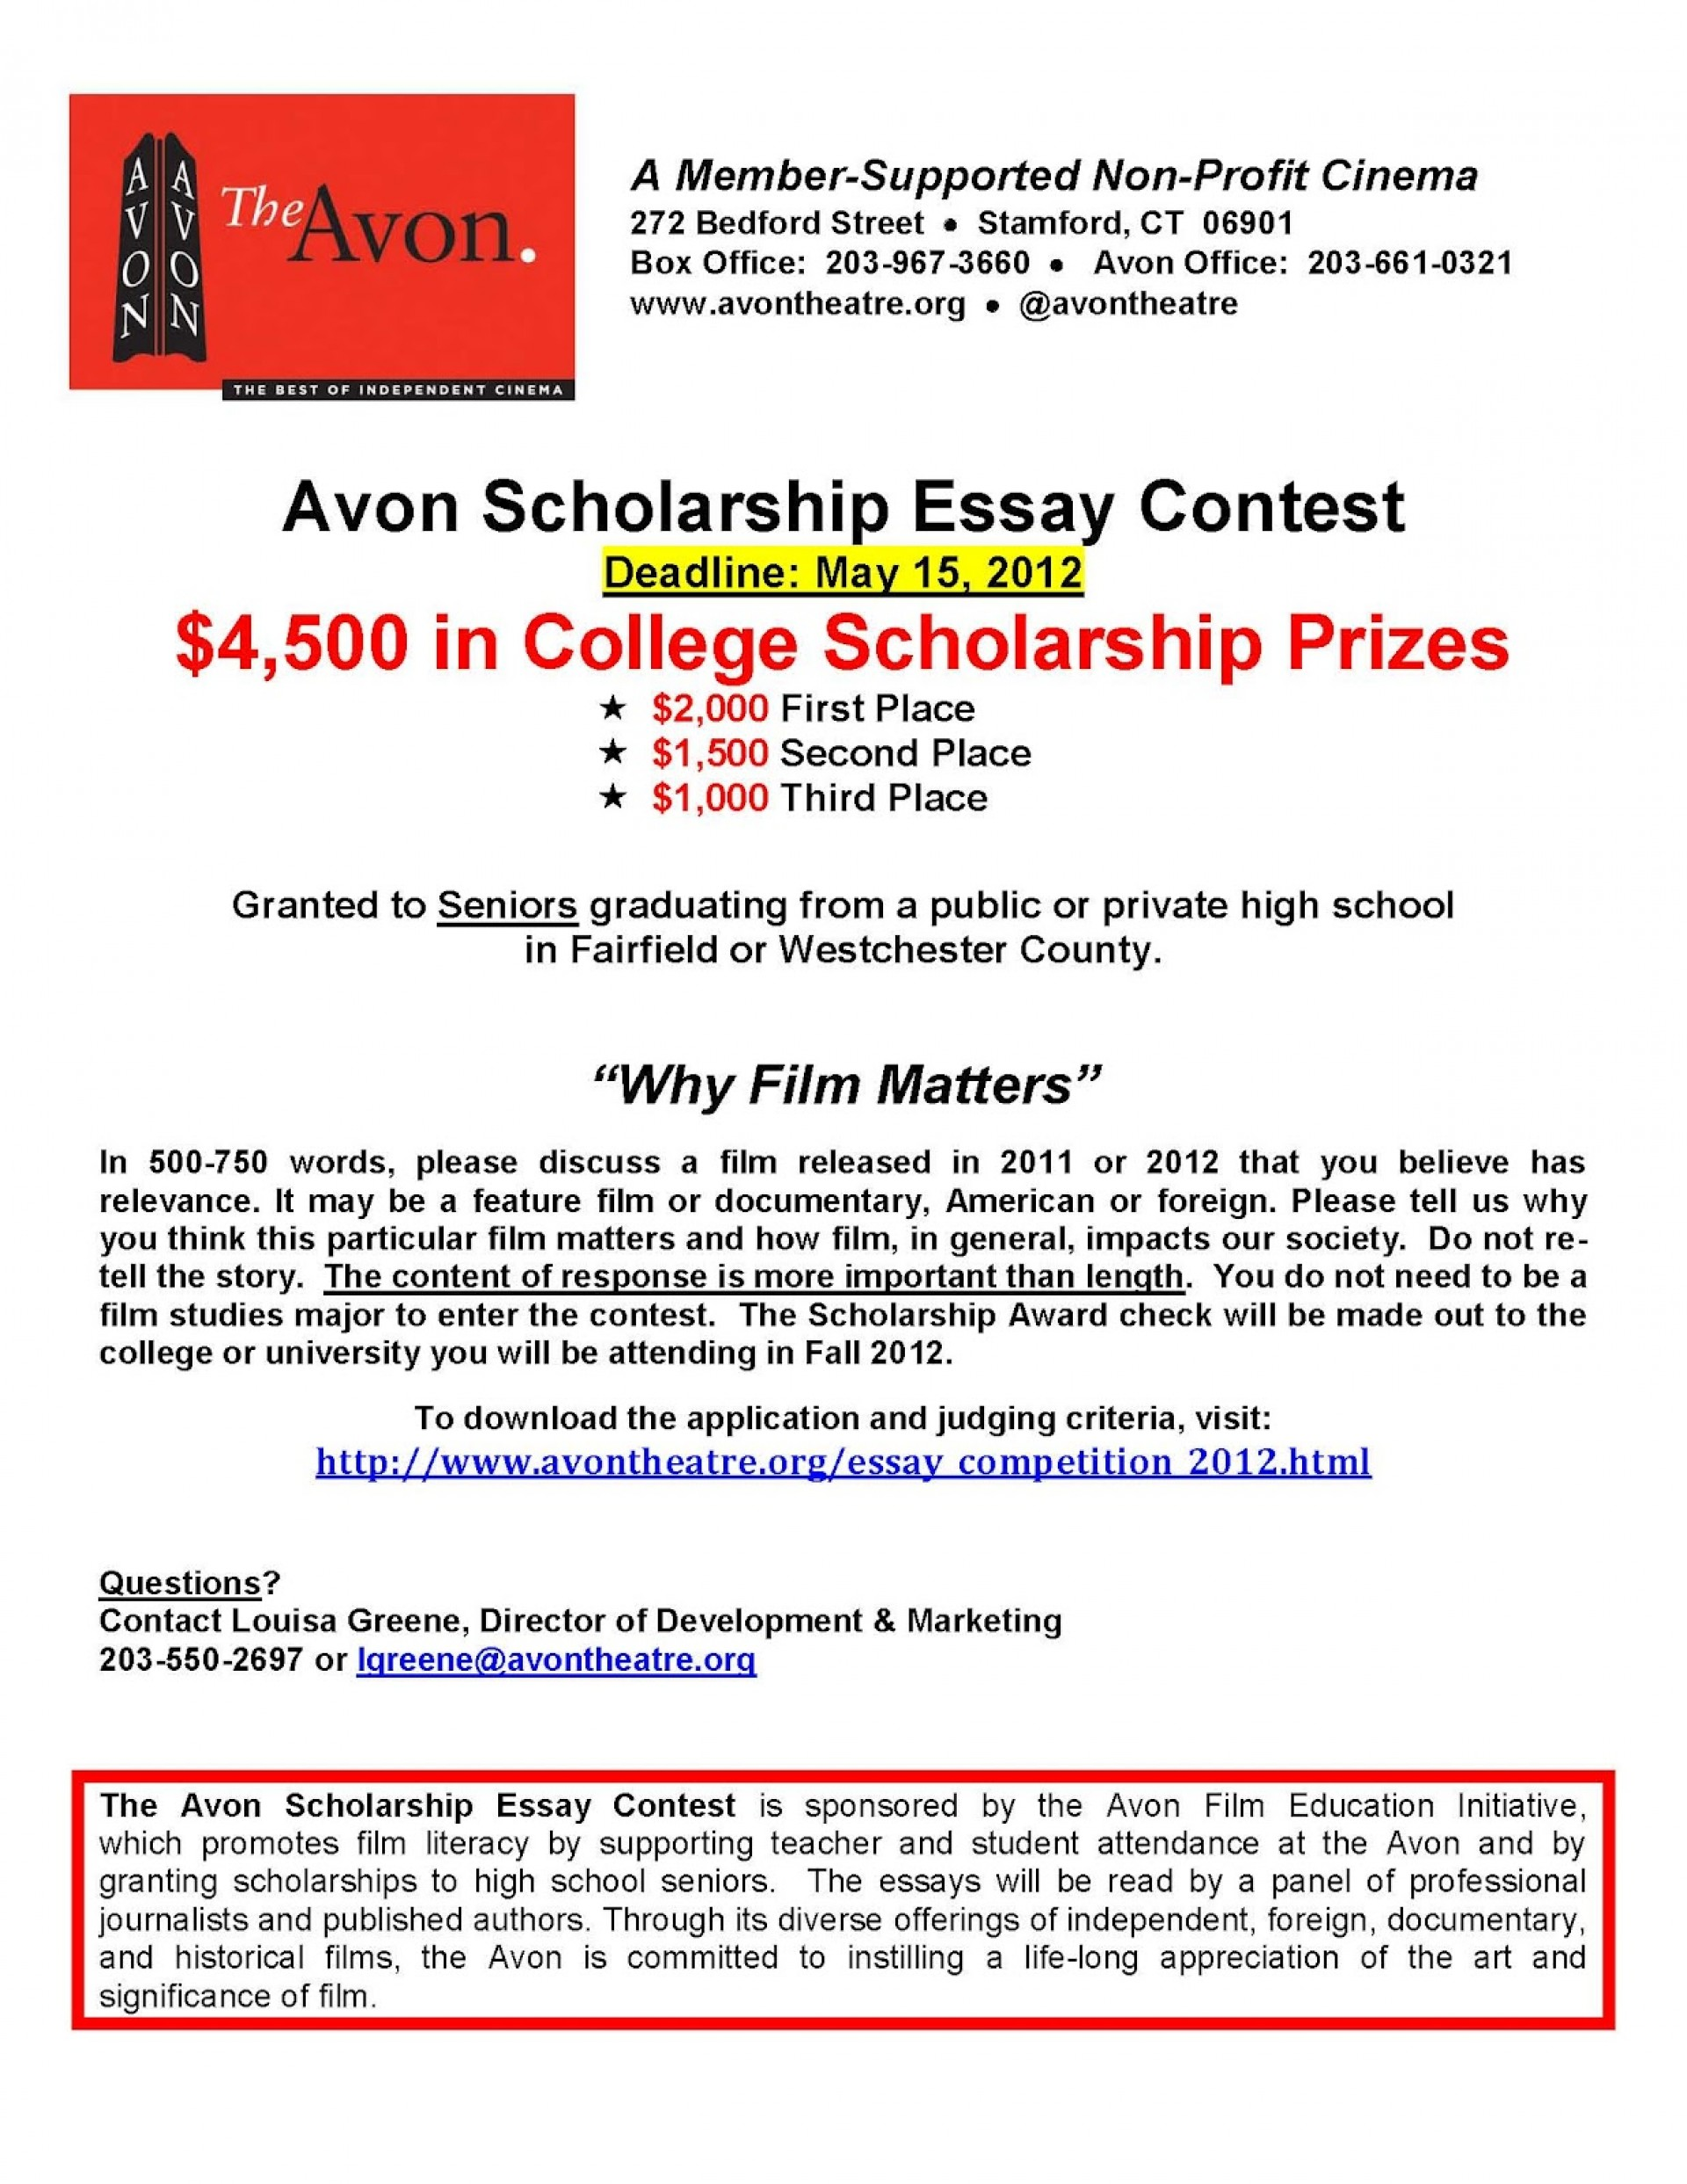 002 No Essay Collegeip Prowler Freeips For High School Seniors Avonscholarshipessaycontest2012 In Texas California Class Of Short Example Wondrous Scholarship College Scholarships 2018 2019 Free 1920